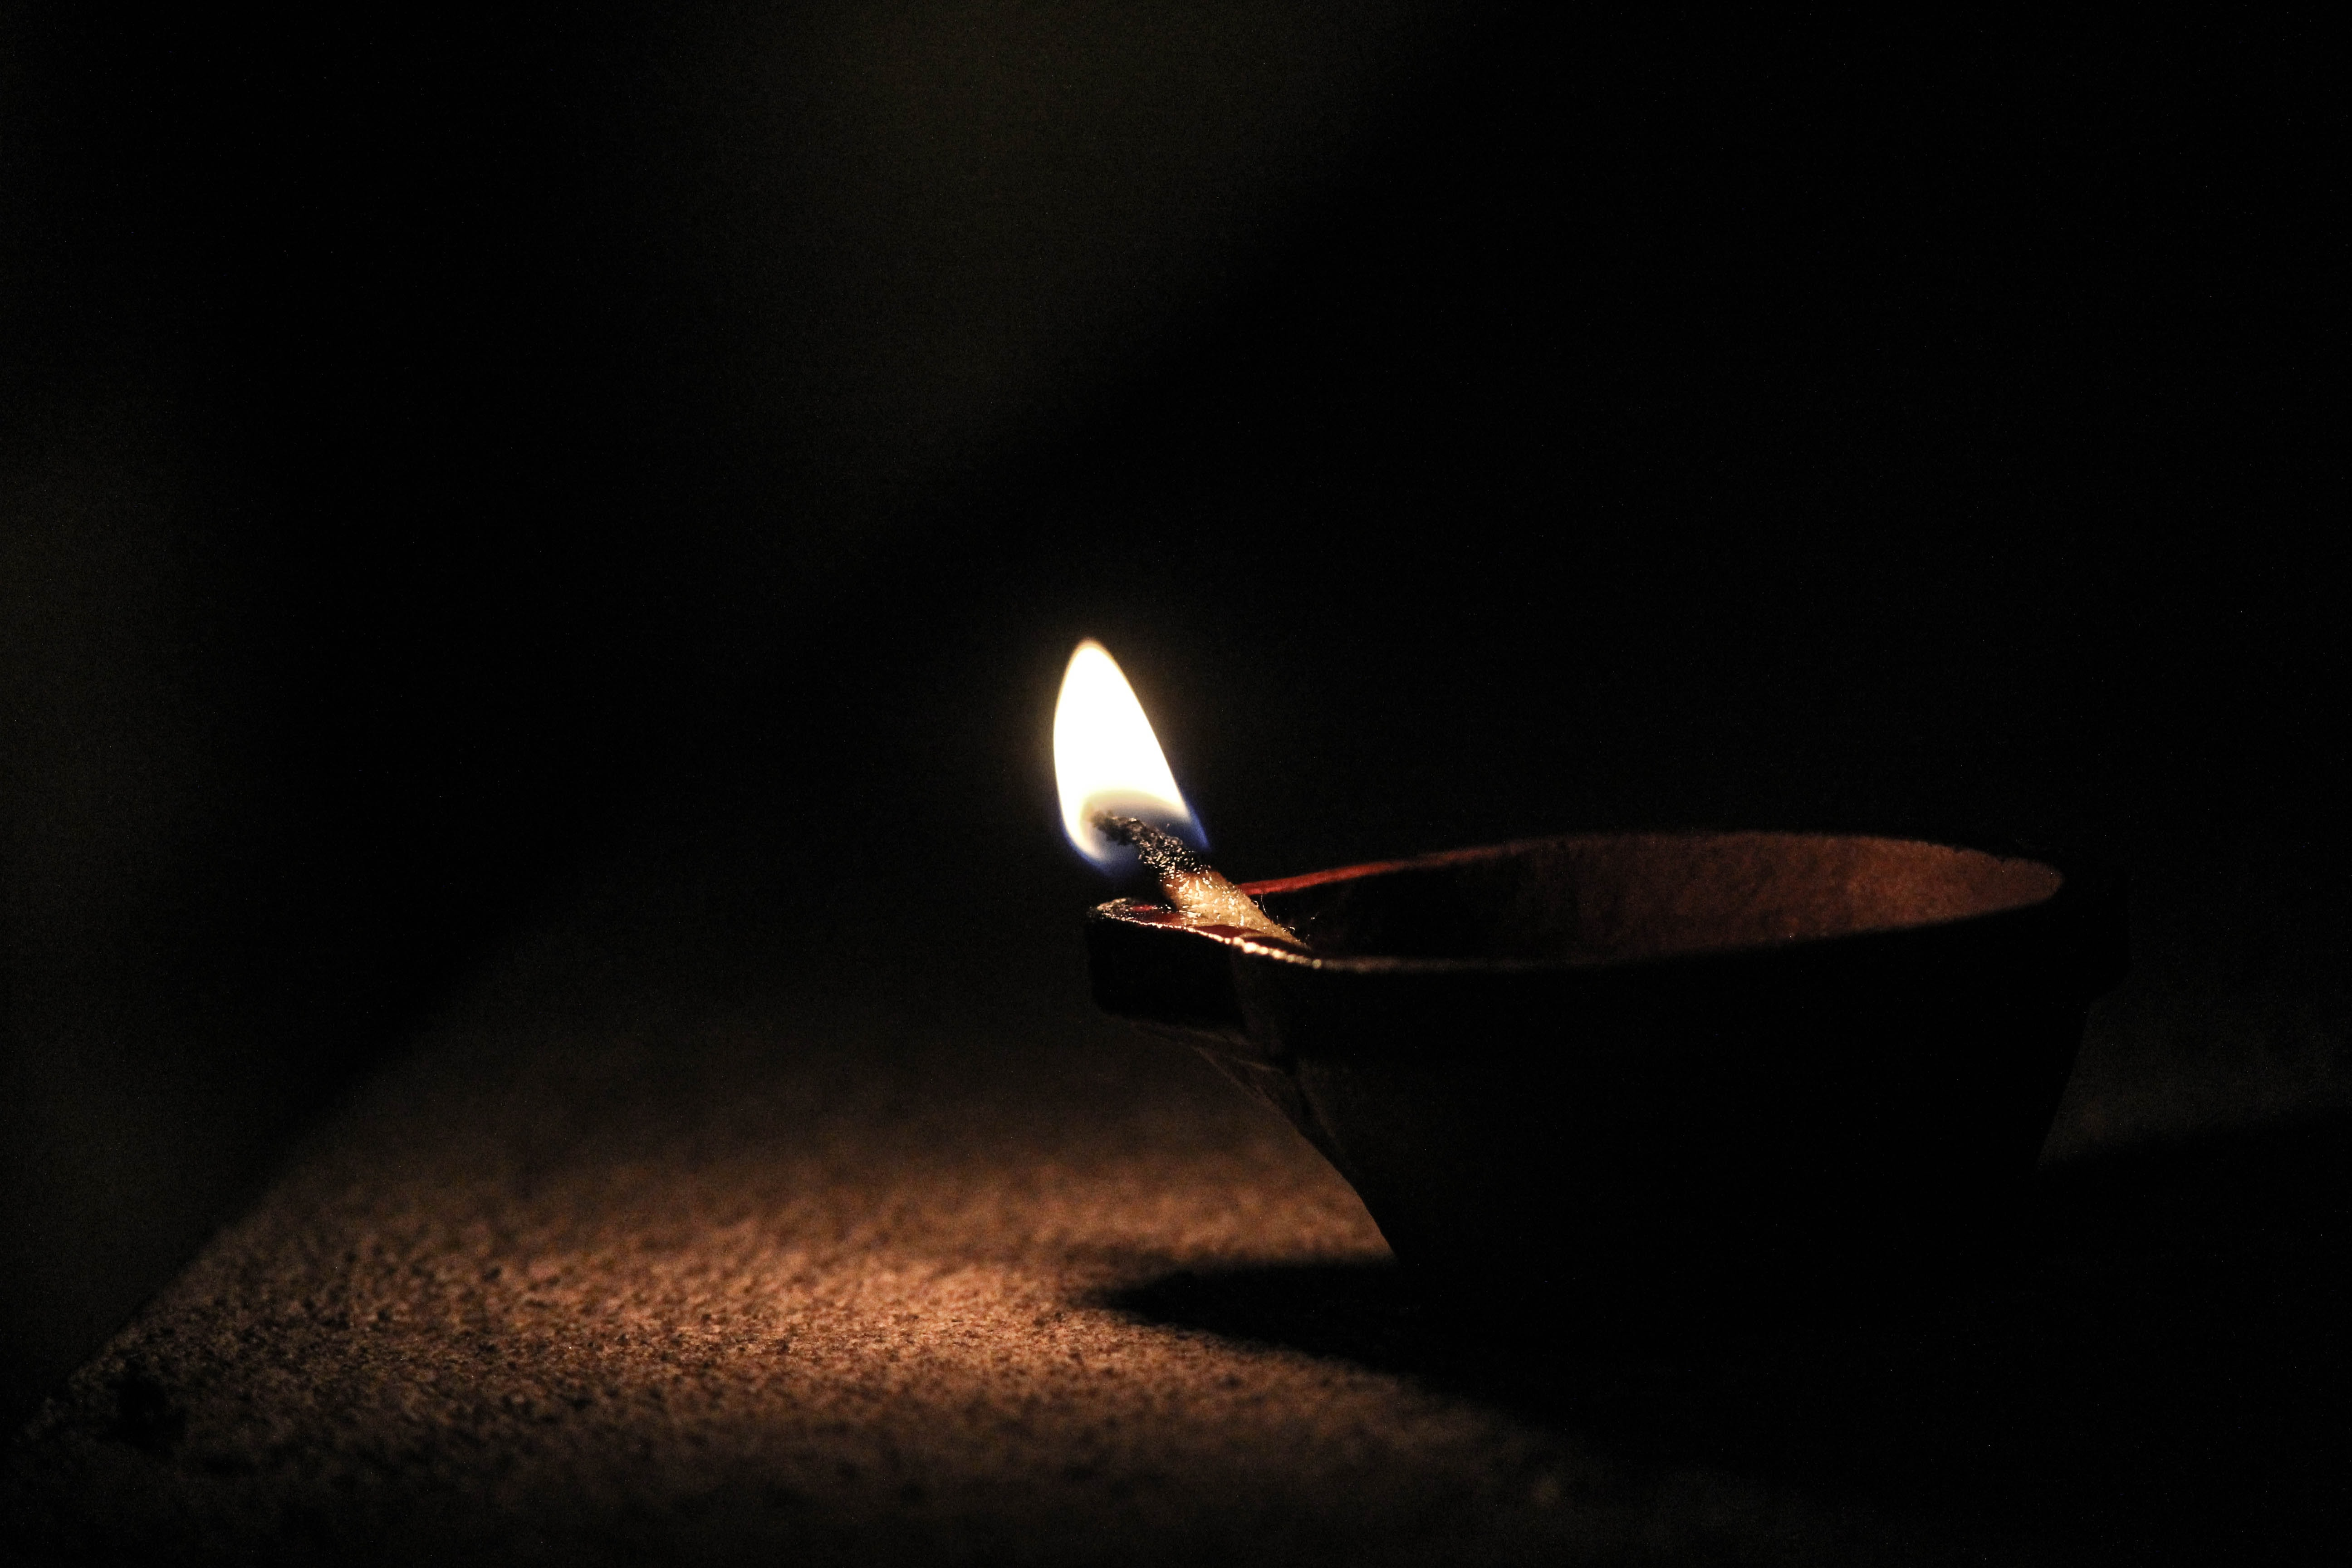 Image of a flame in an oil lamp